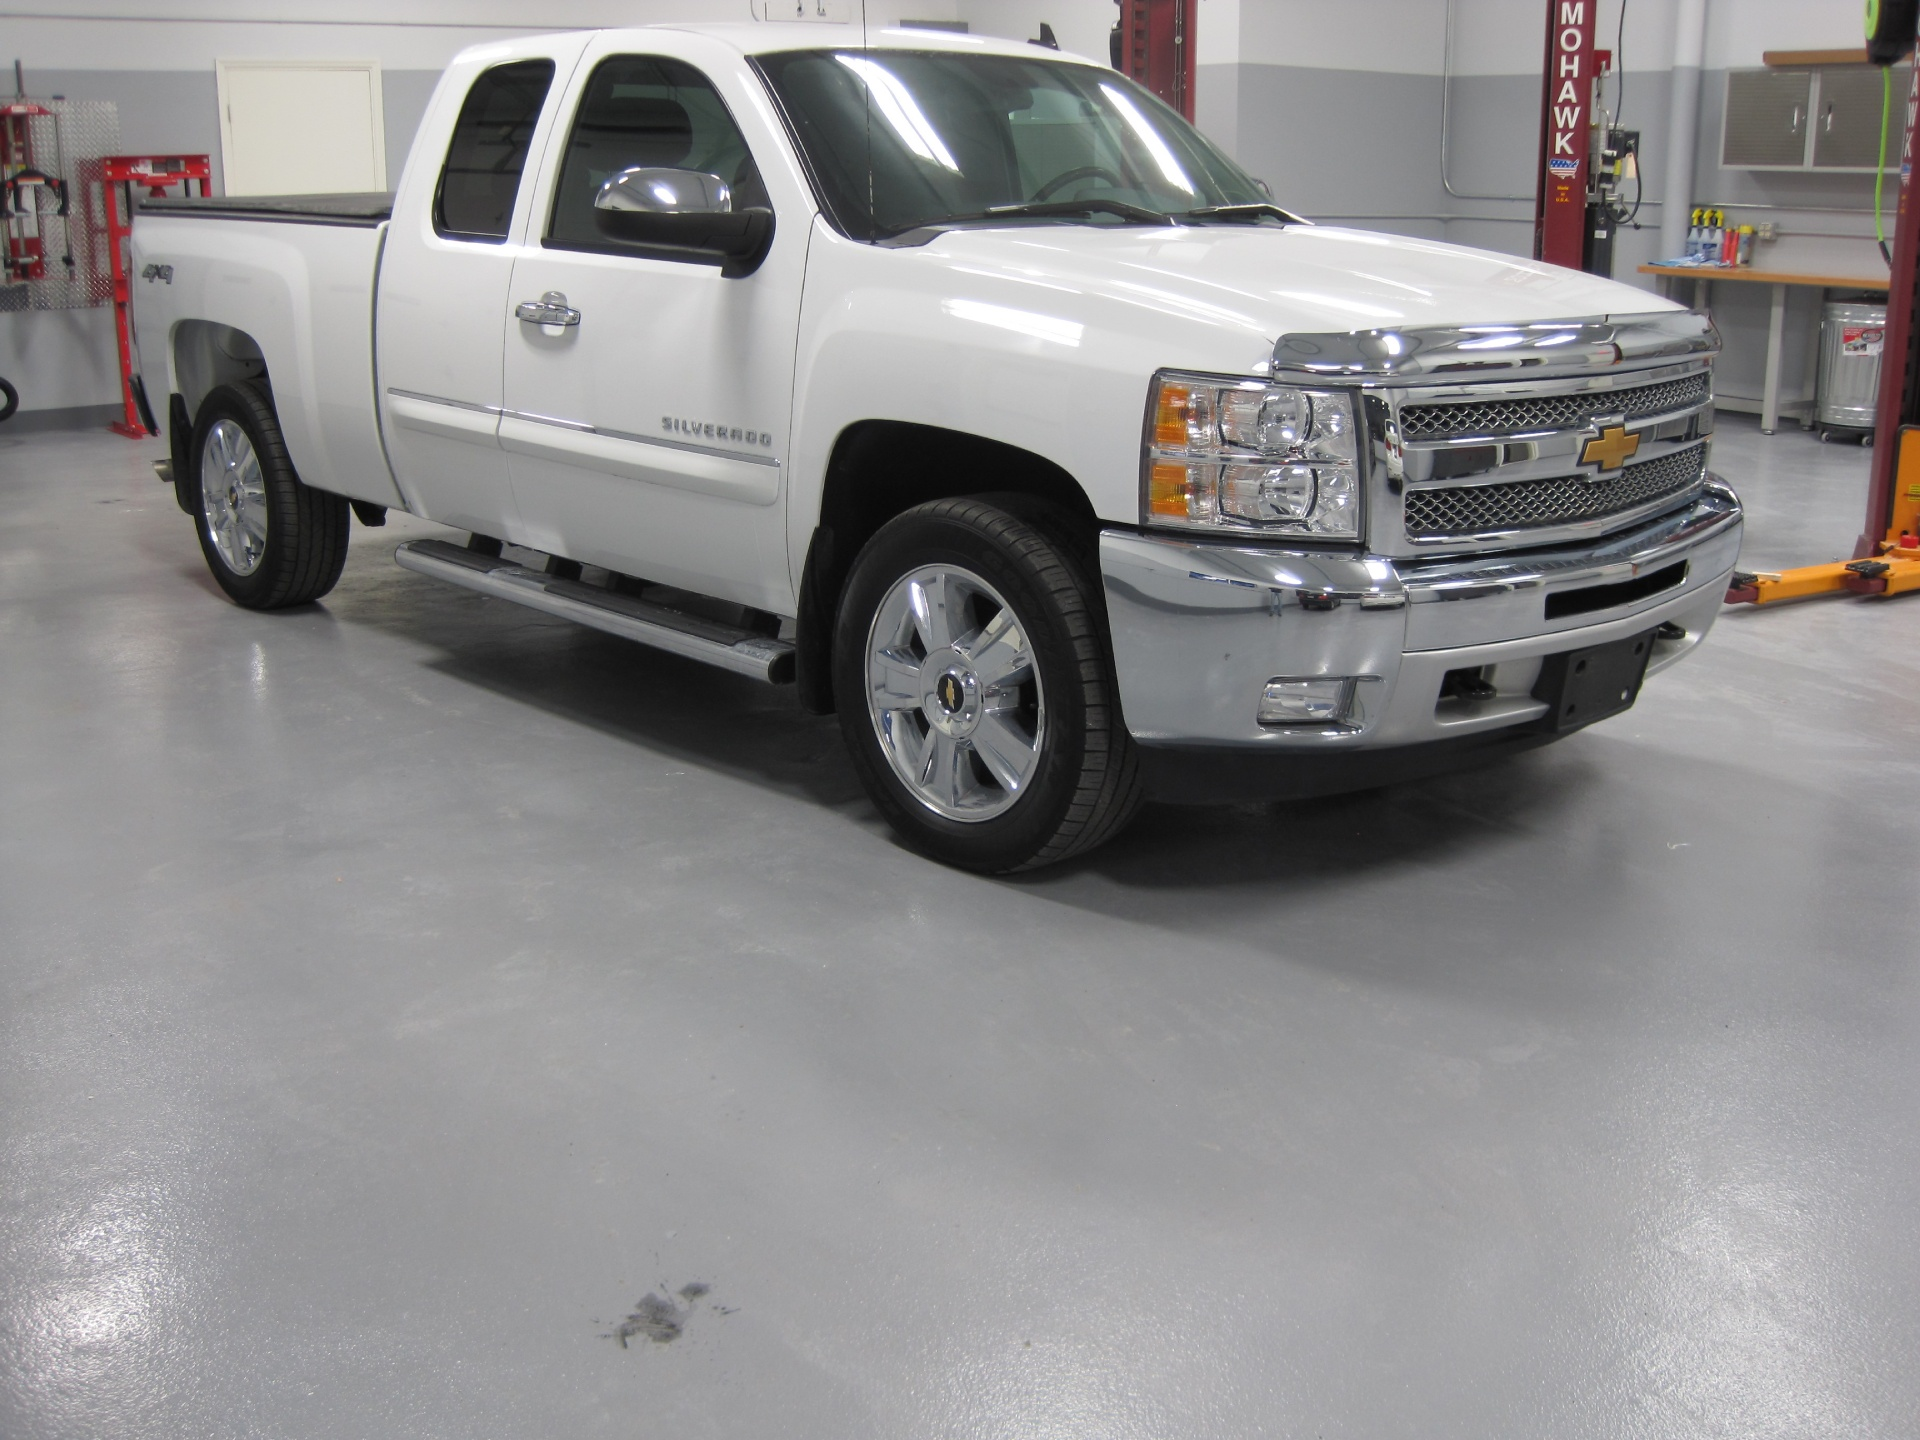 2013 chevrolet silverado 1500 lt extended cab super clean super low miles 4wd stock 16009 for. Black Bedroom Furniture Sets. Home Design Ideas